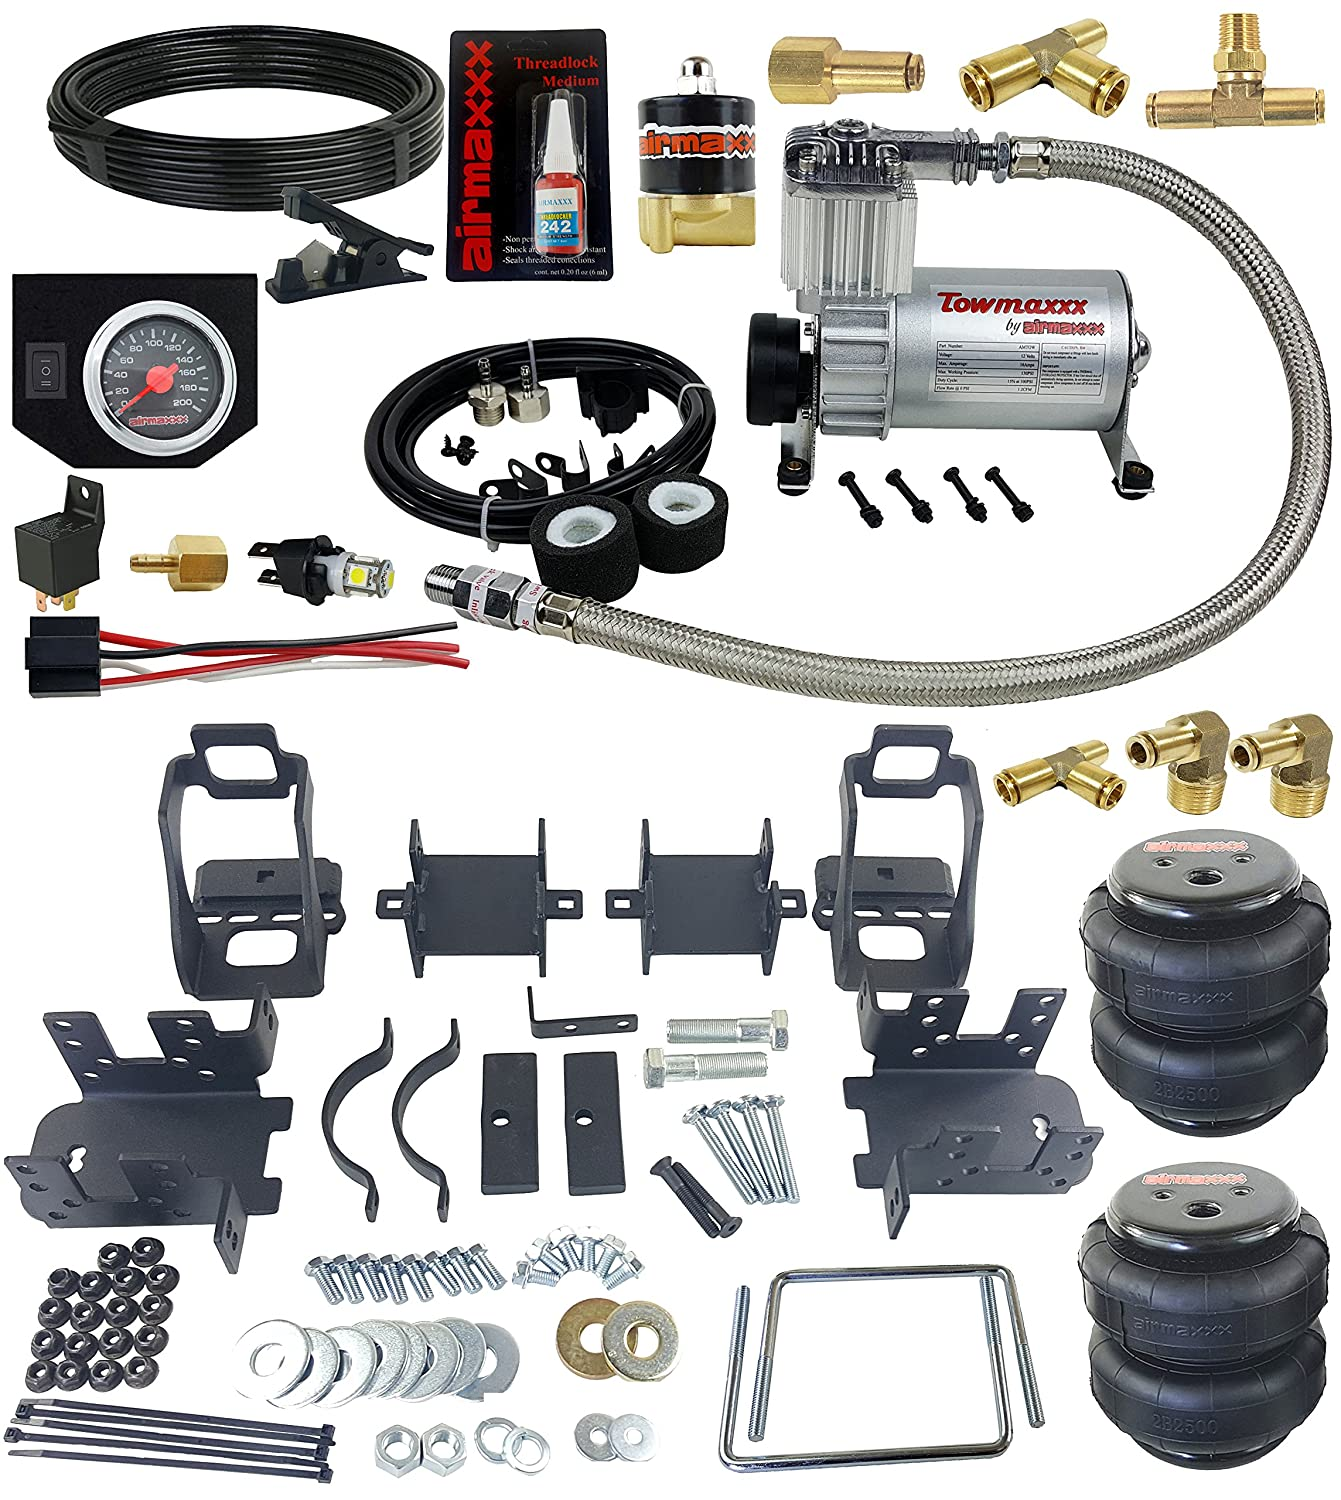 airmaxxx 1999-04 Ford F250 Air Over Load Tow Kit Compressor & Gauge